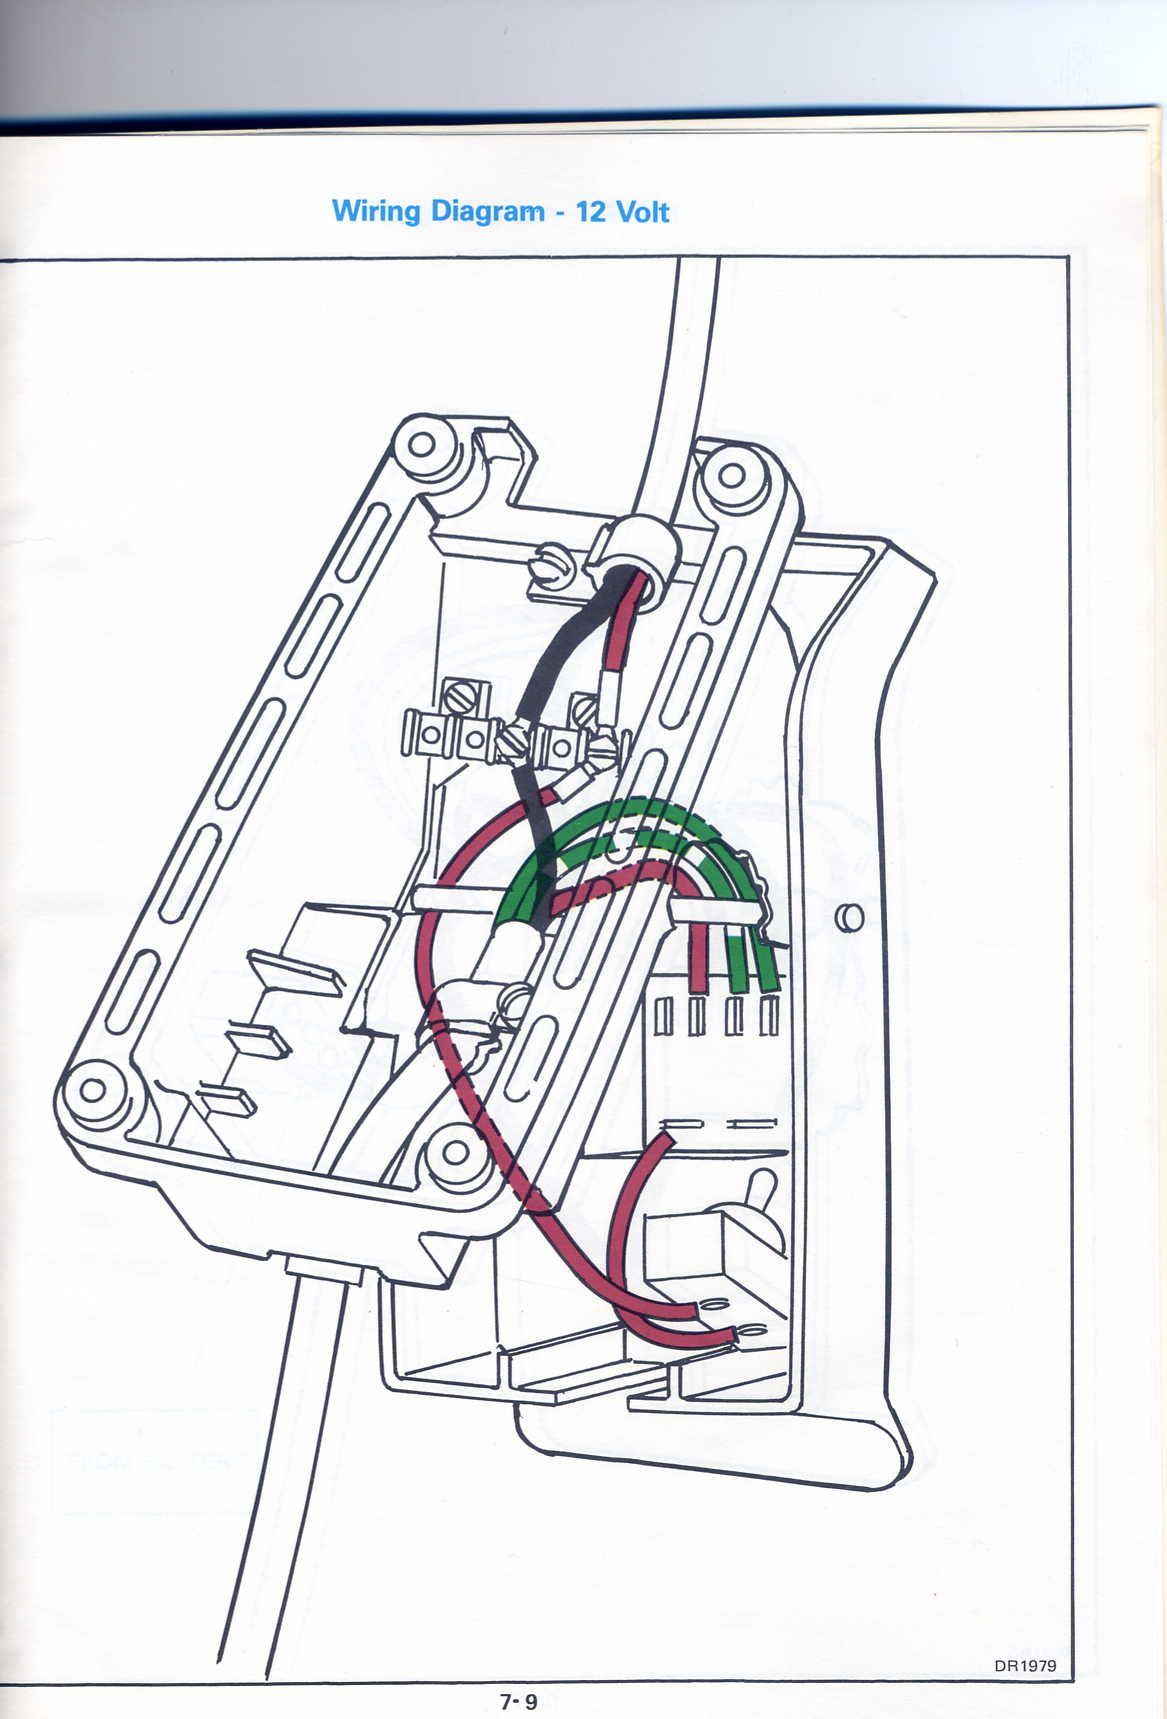 Motorguide Trolling Motor Wiring Diagram: Trying To Repair A Friends - Motorguide Trolling Motor Wiring Diagram